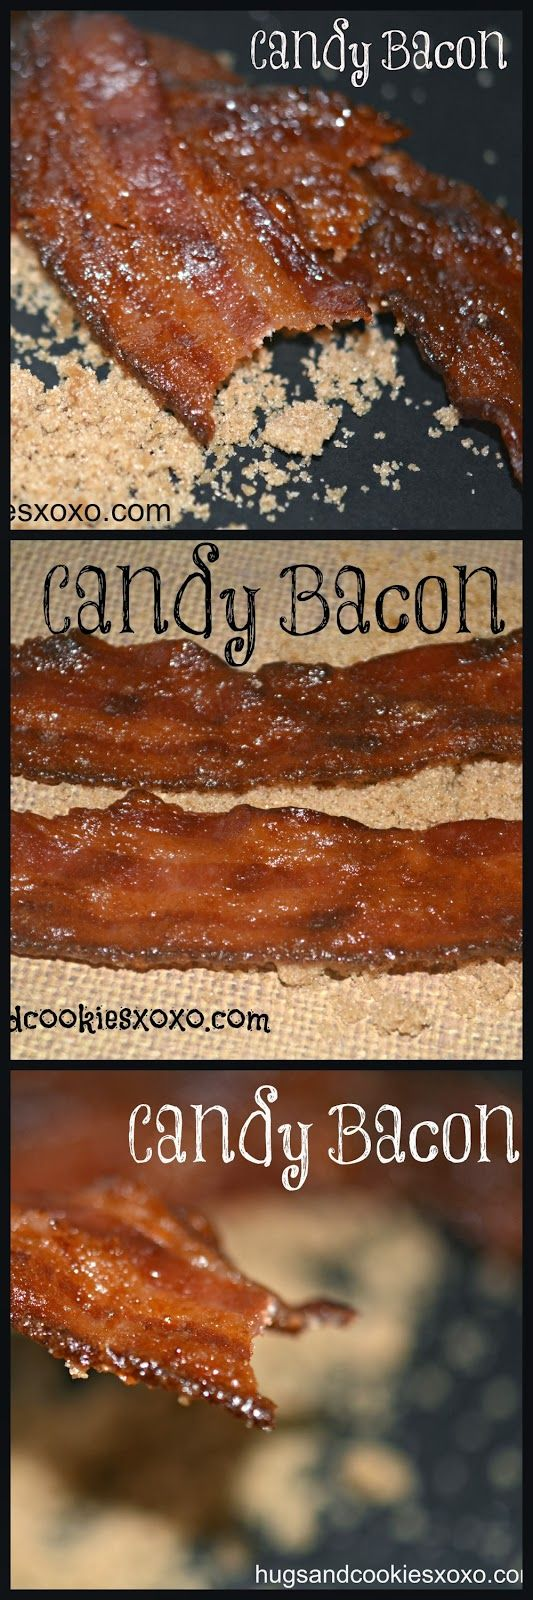 BACON CANDY, CANDY BACON, YUM!!!! - Hugs and Cookies XOXO